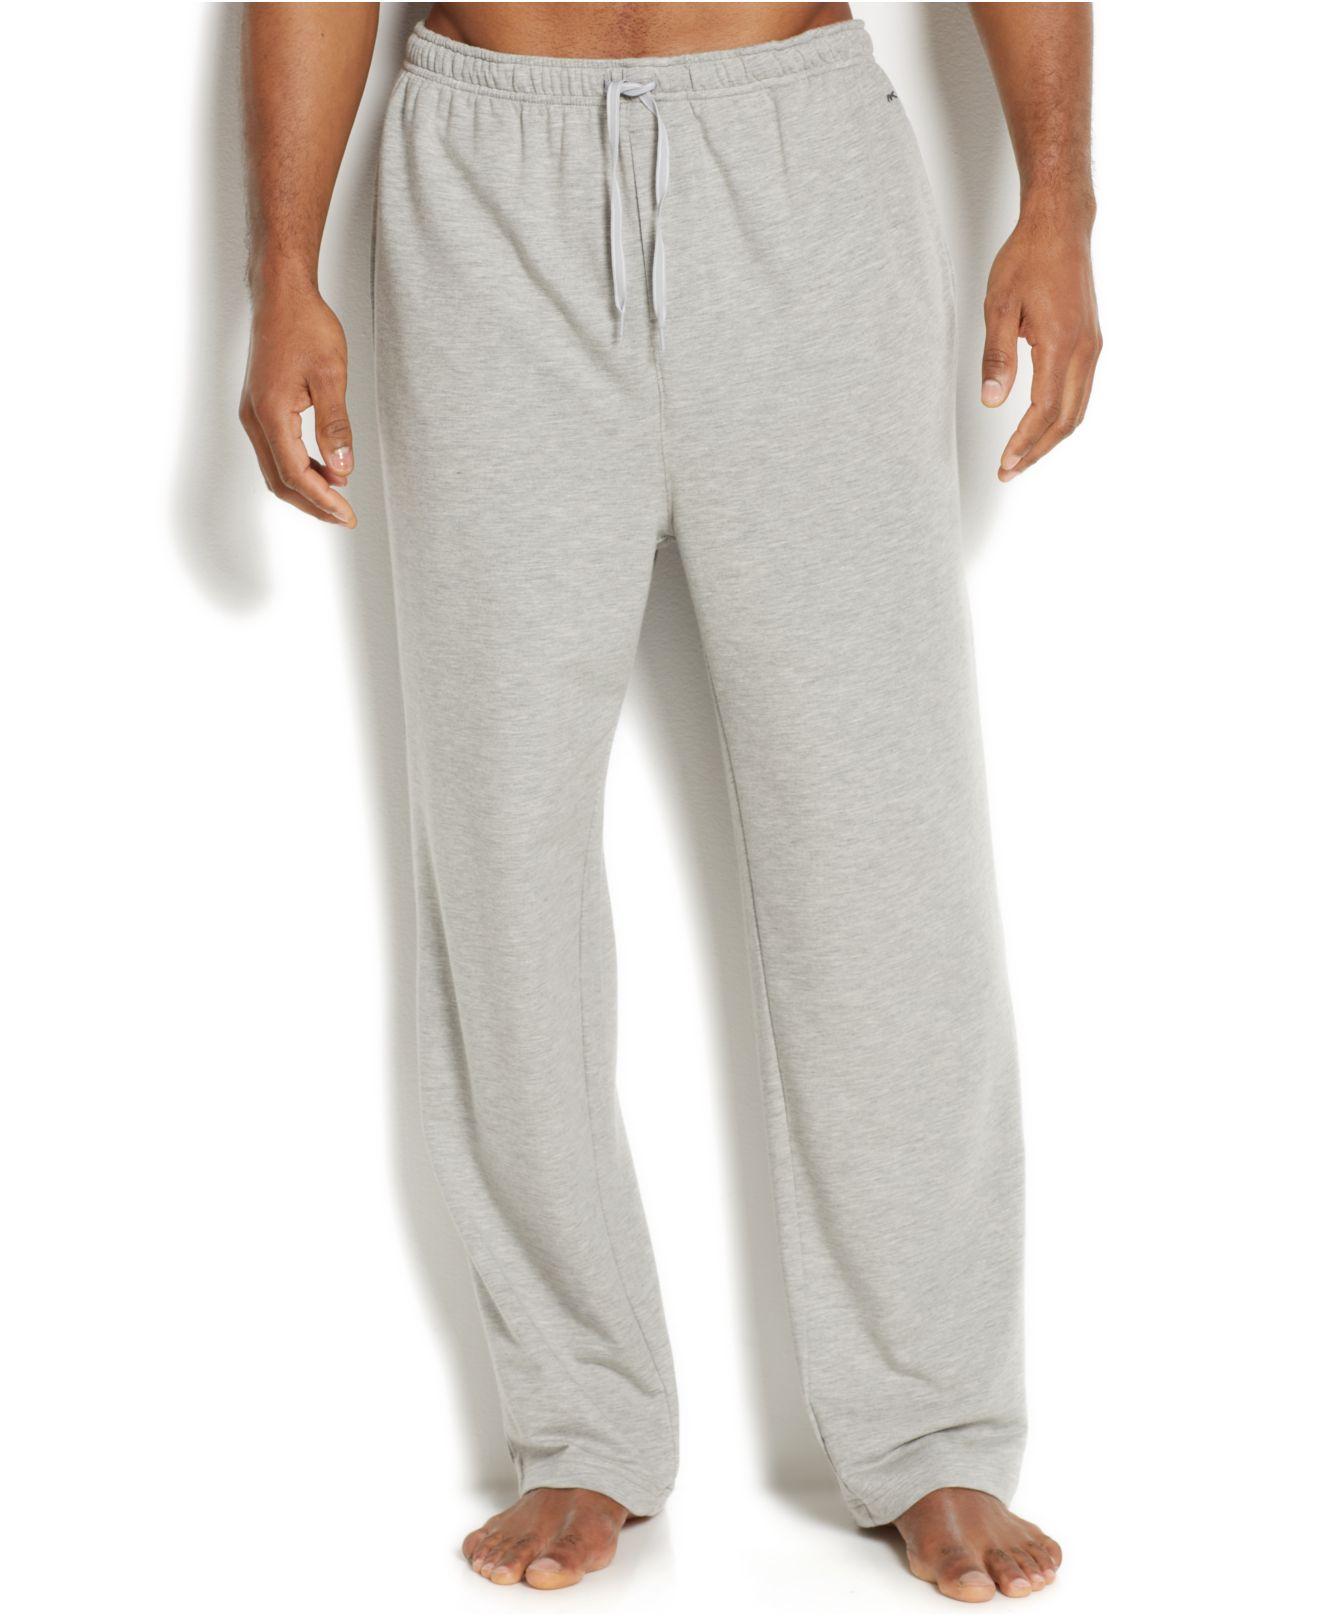 3e2a321a84 Lyst - Michael Kors Men S Modal French Terry Lounge Pants in Gray ...